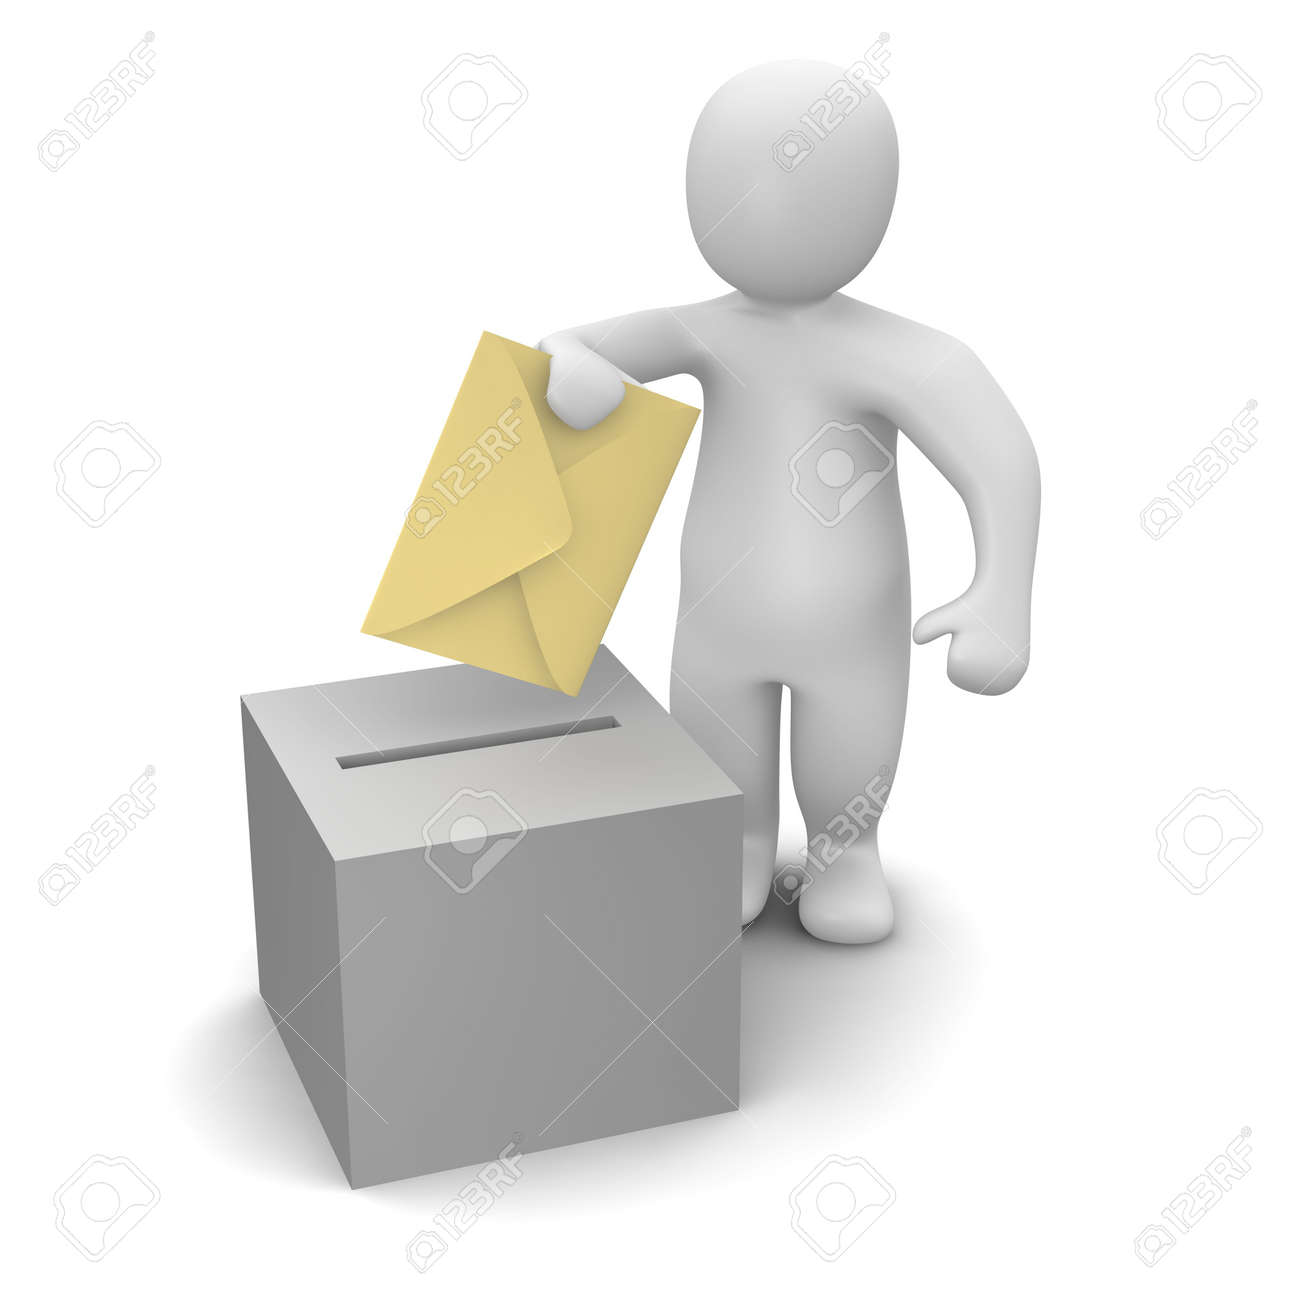 Man Sending Letter Or Vote Concept Stock Photo Picture And Royalty